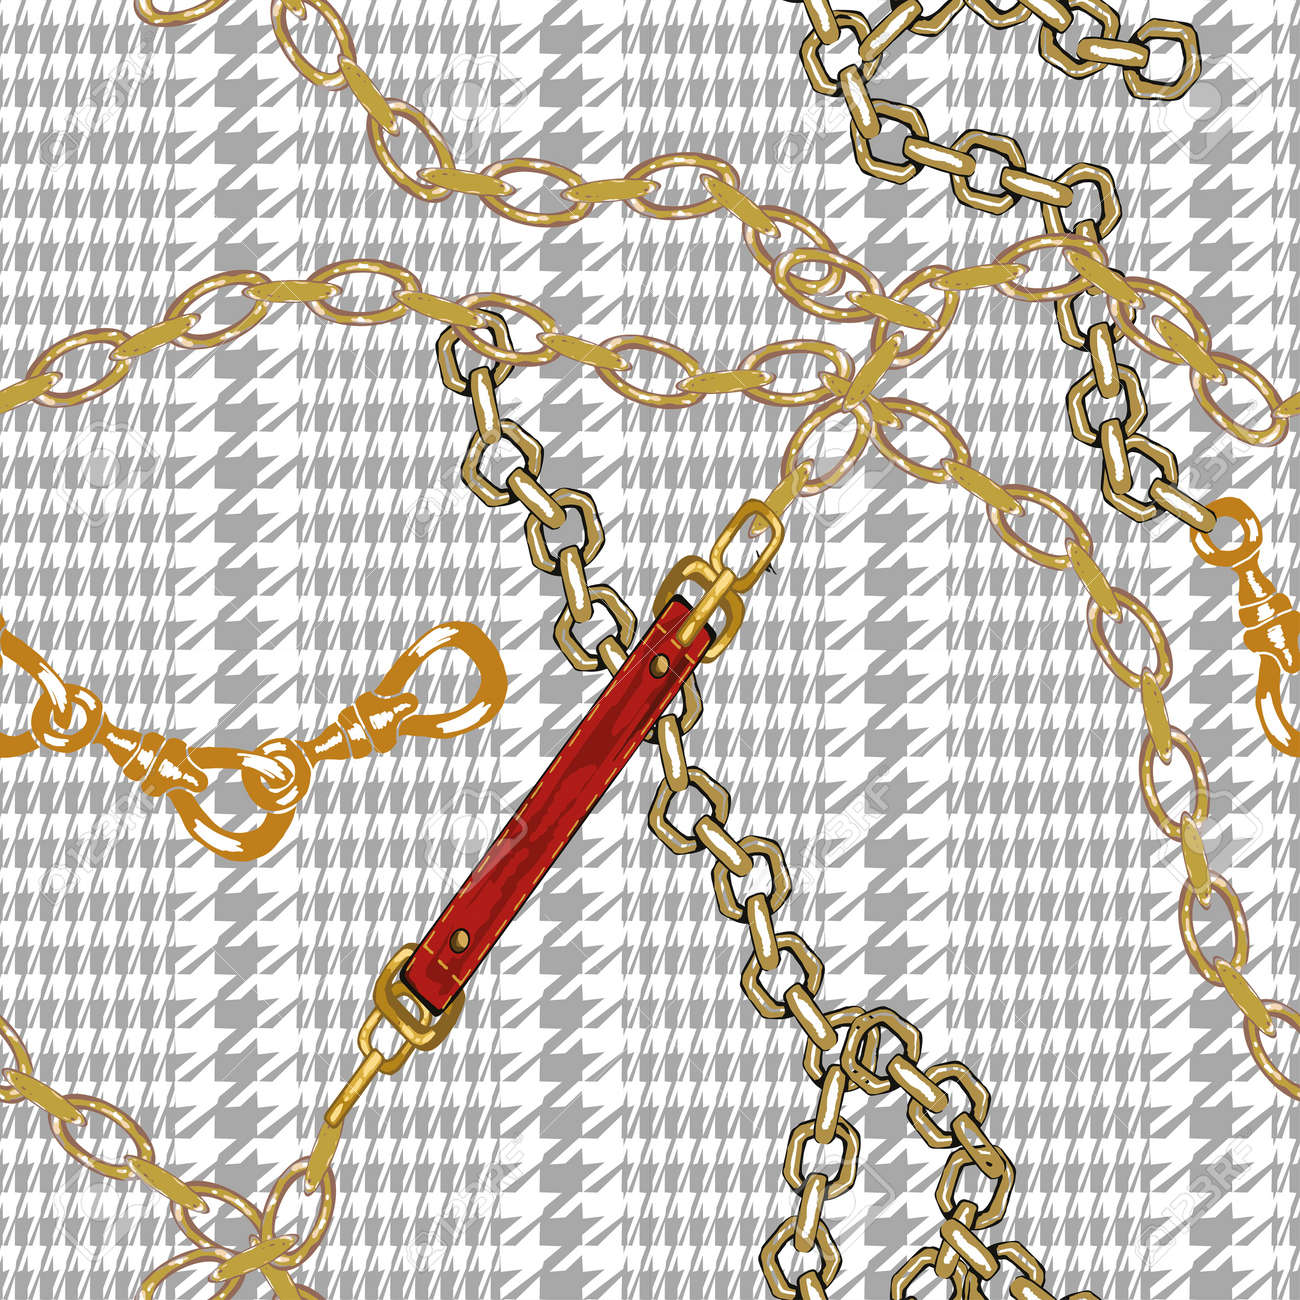 Pattern with gold chains pie de poul and red leather belts. Vintage seamless wallpaper. Perfect for textile - 158589901